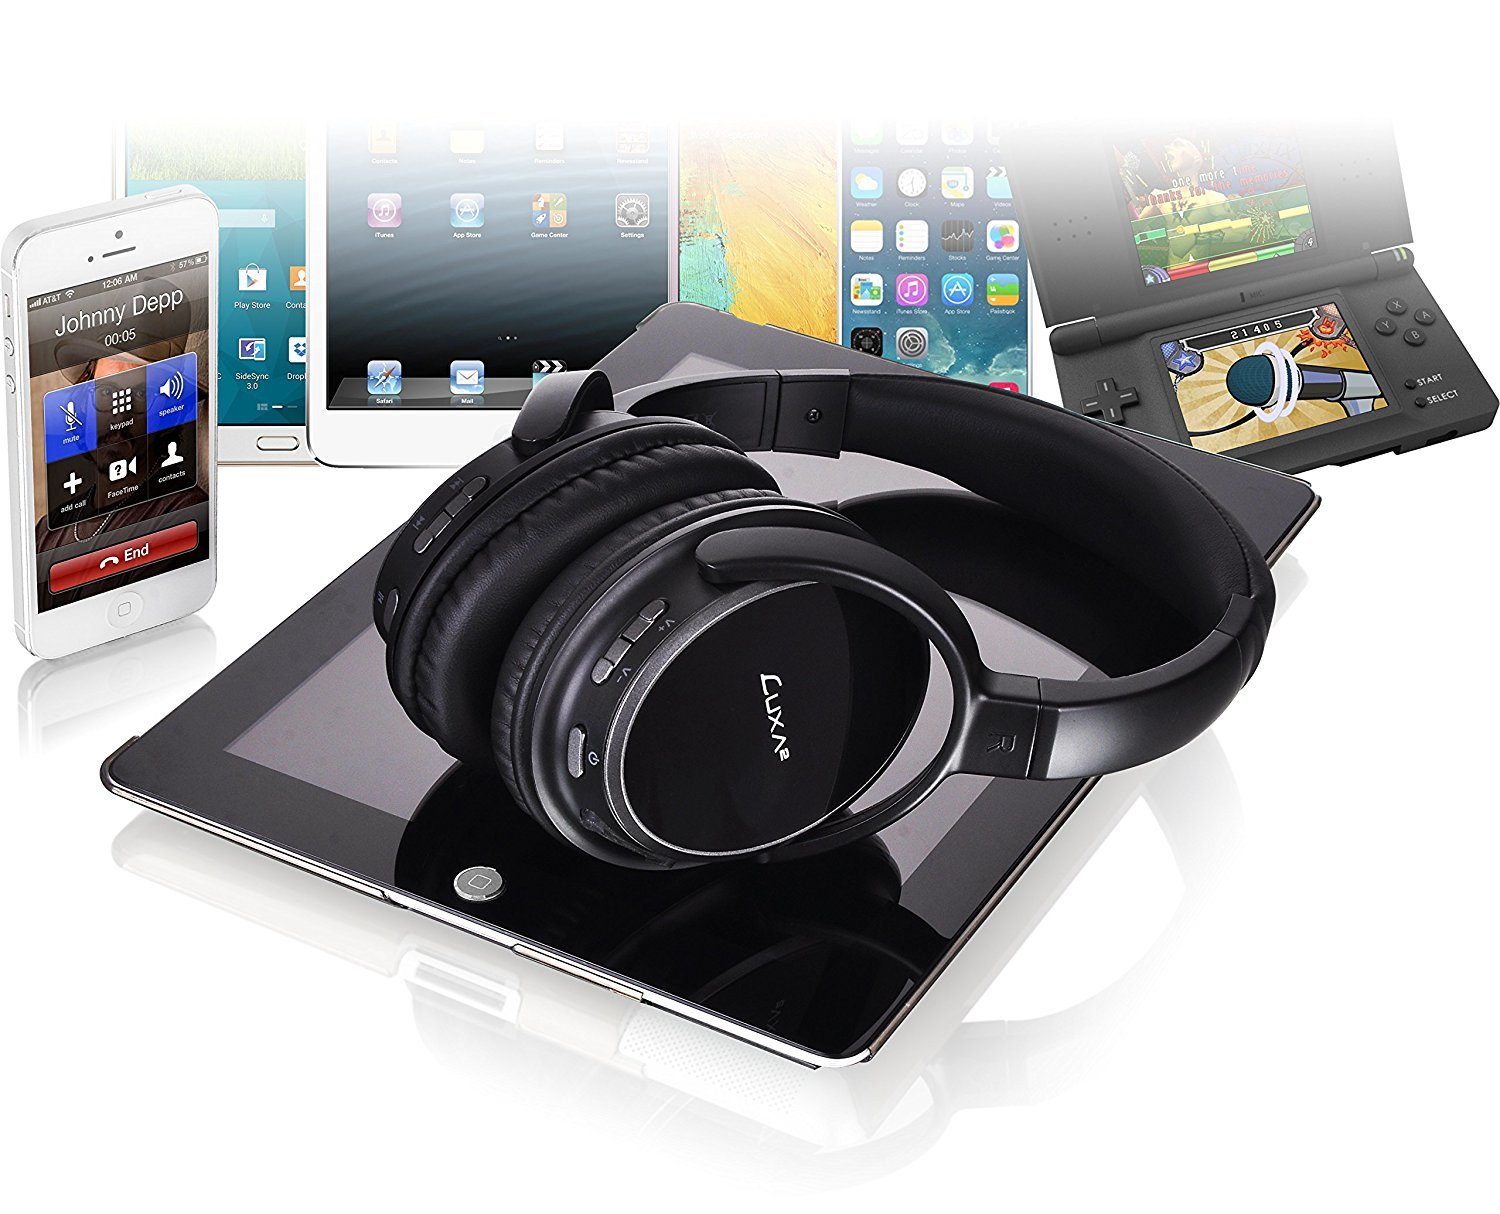 LUXA2 by Thermaltake Lavi D Over-Ear Wireless Headphones image